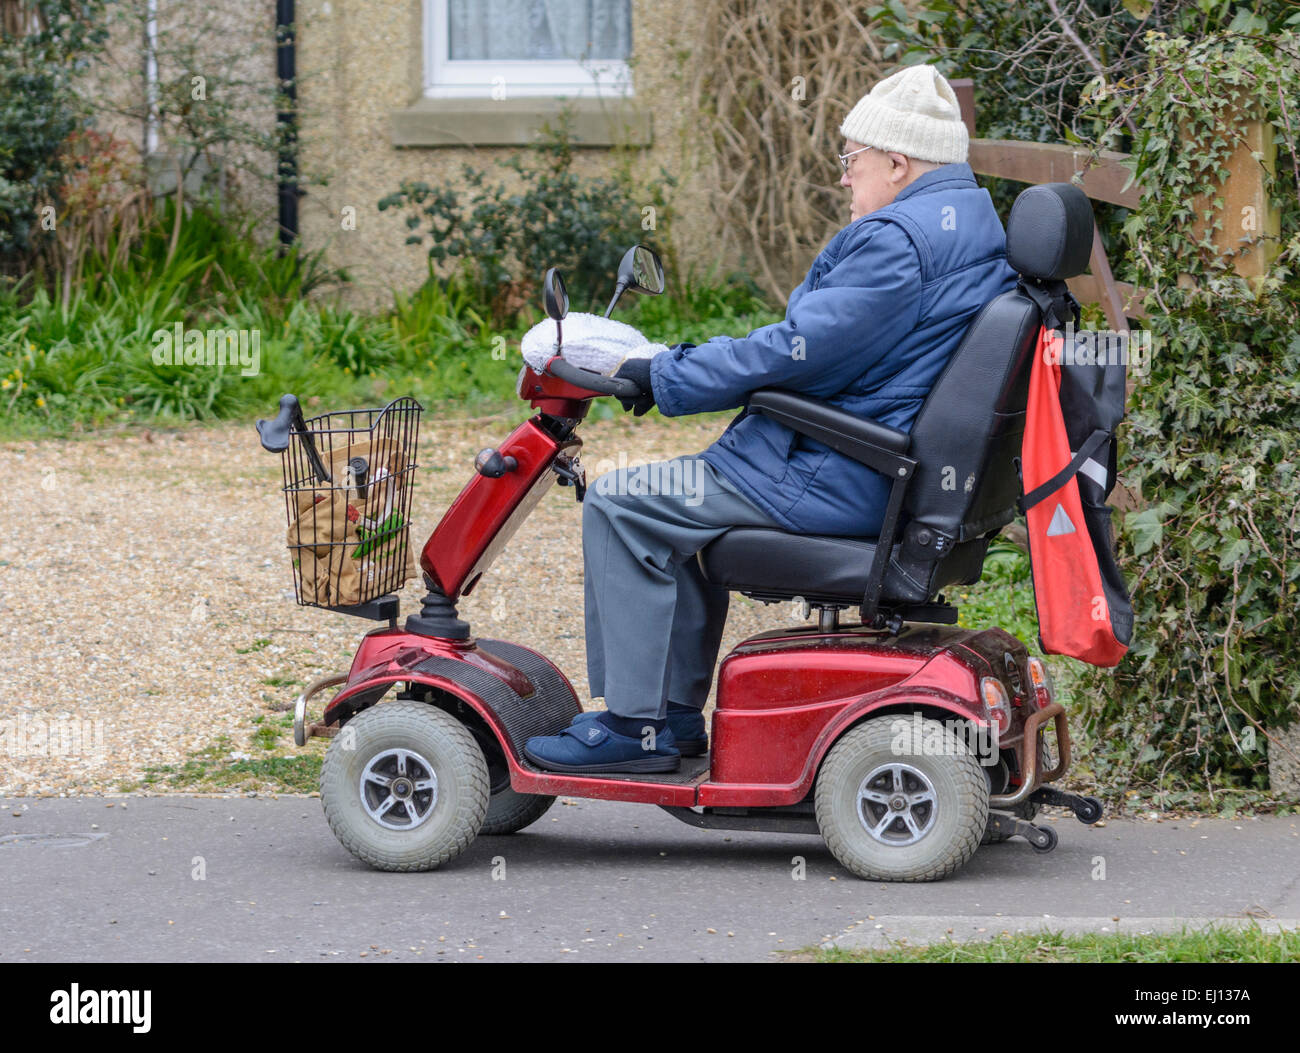 Mobility scooter - Electric mobility scooter being ridden by an elderly man along a pavement. - Stock Image